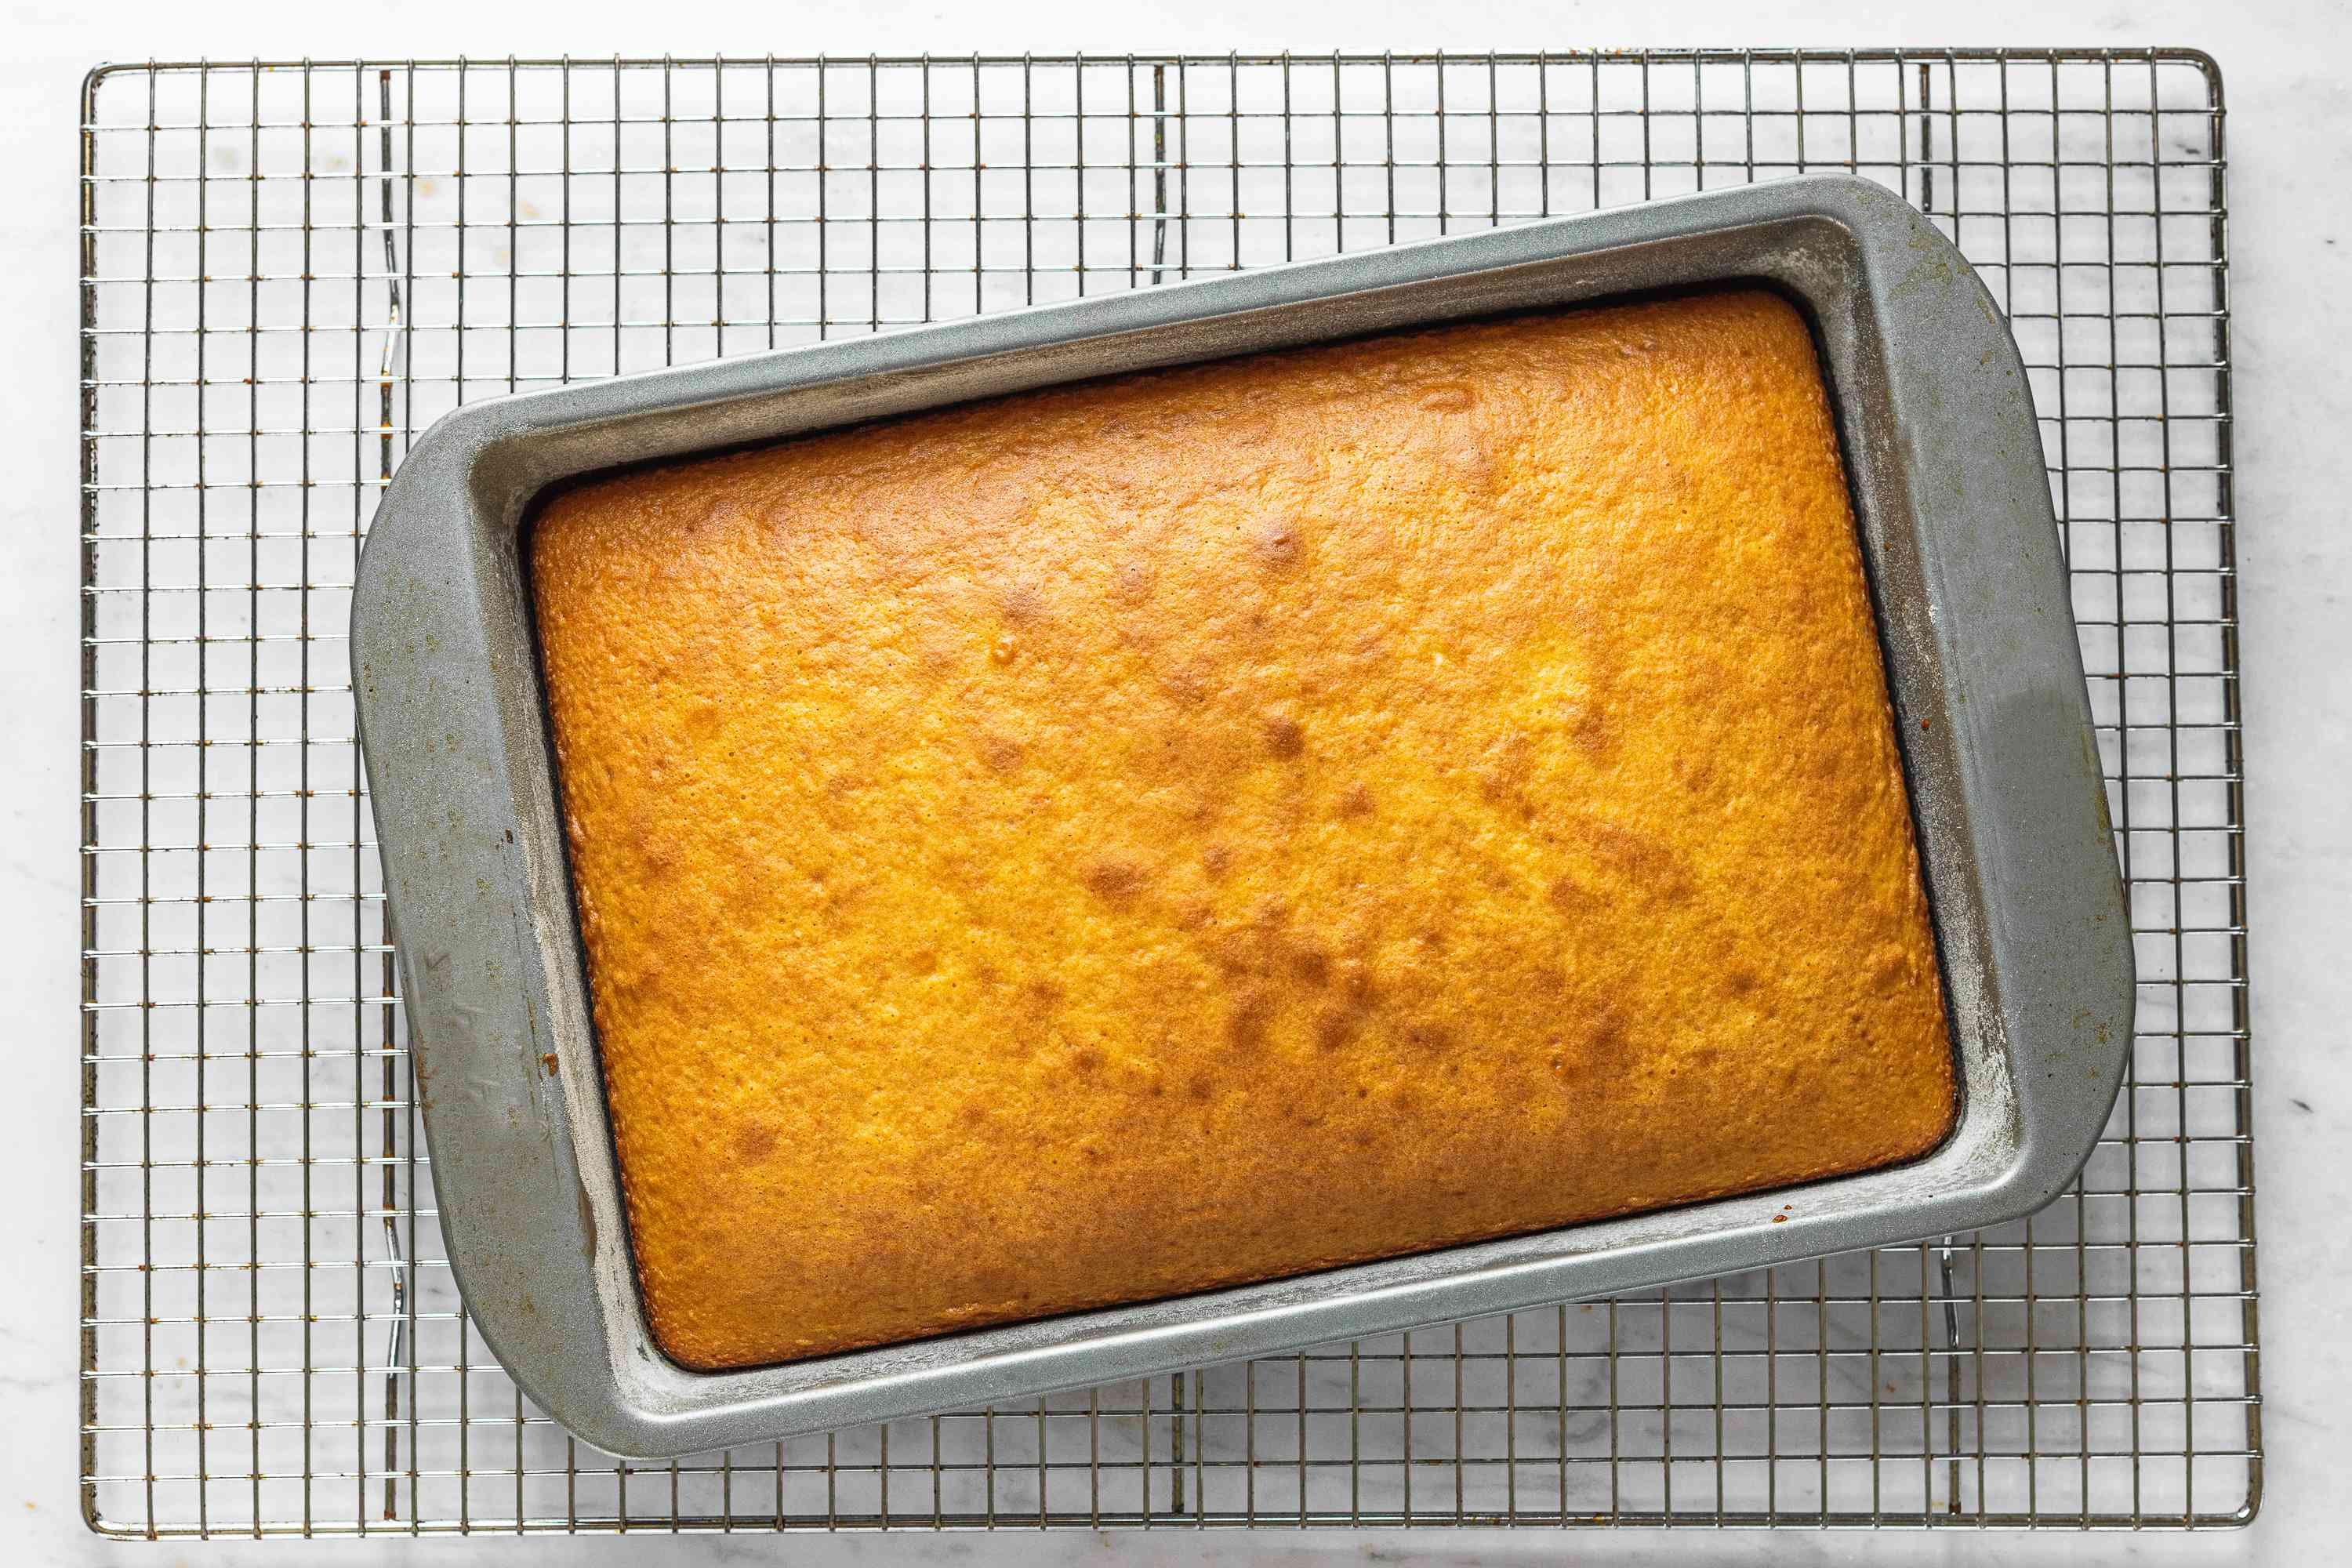 Baked cake in a baking dish, on a cooling rack